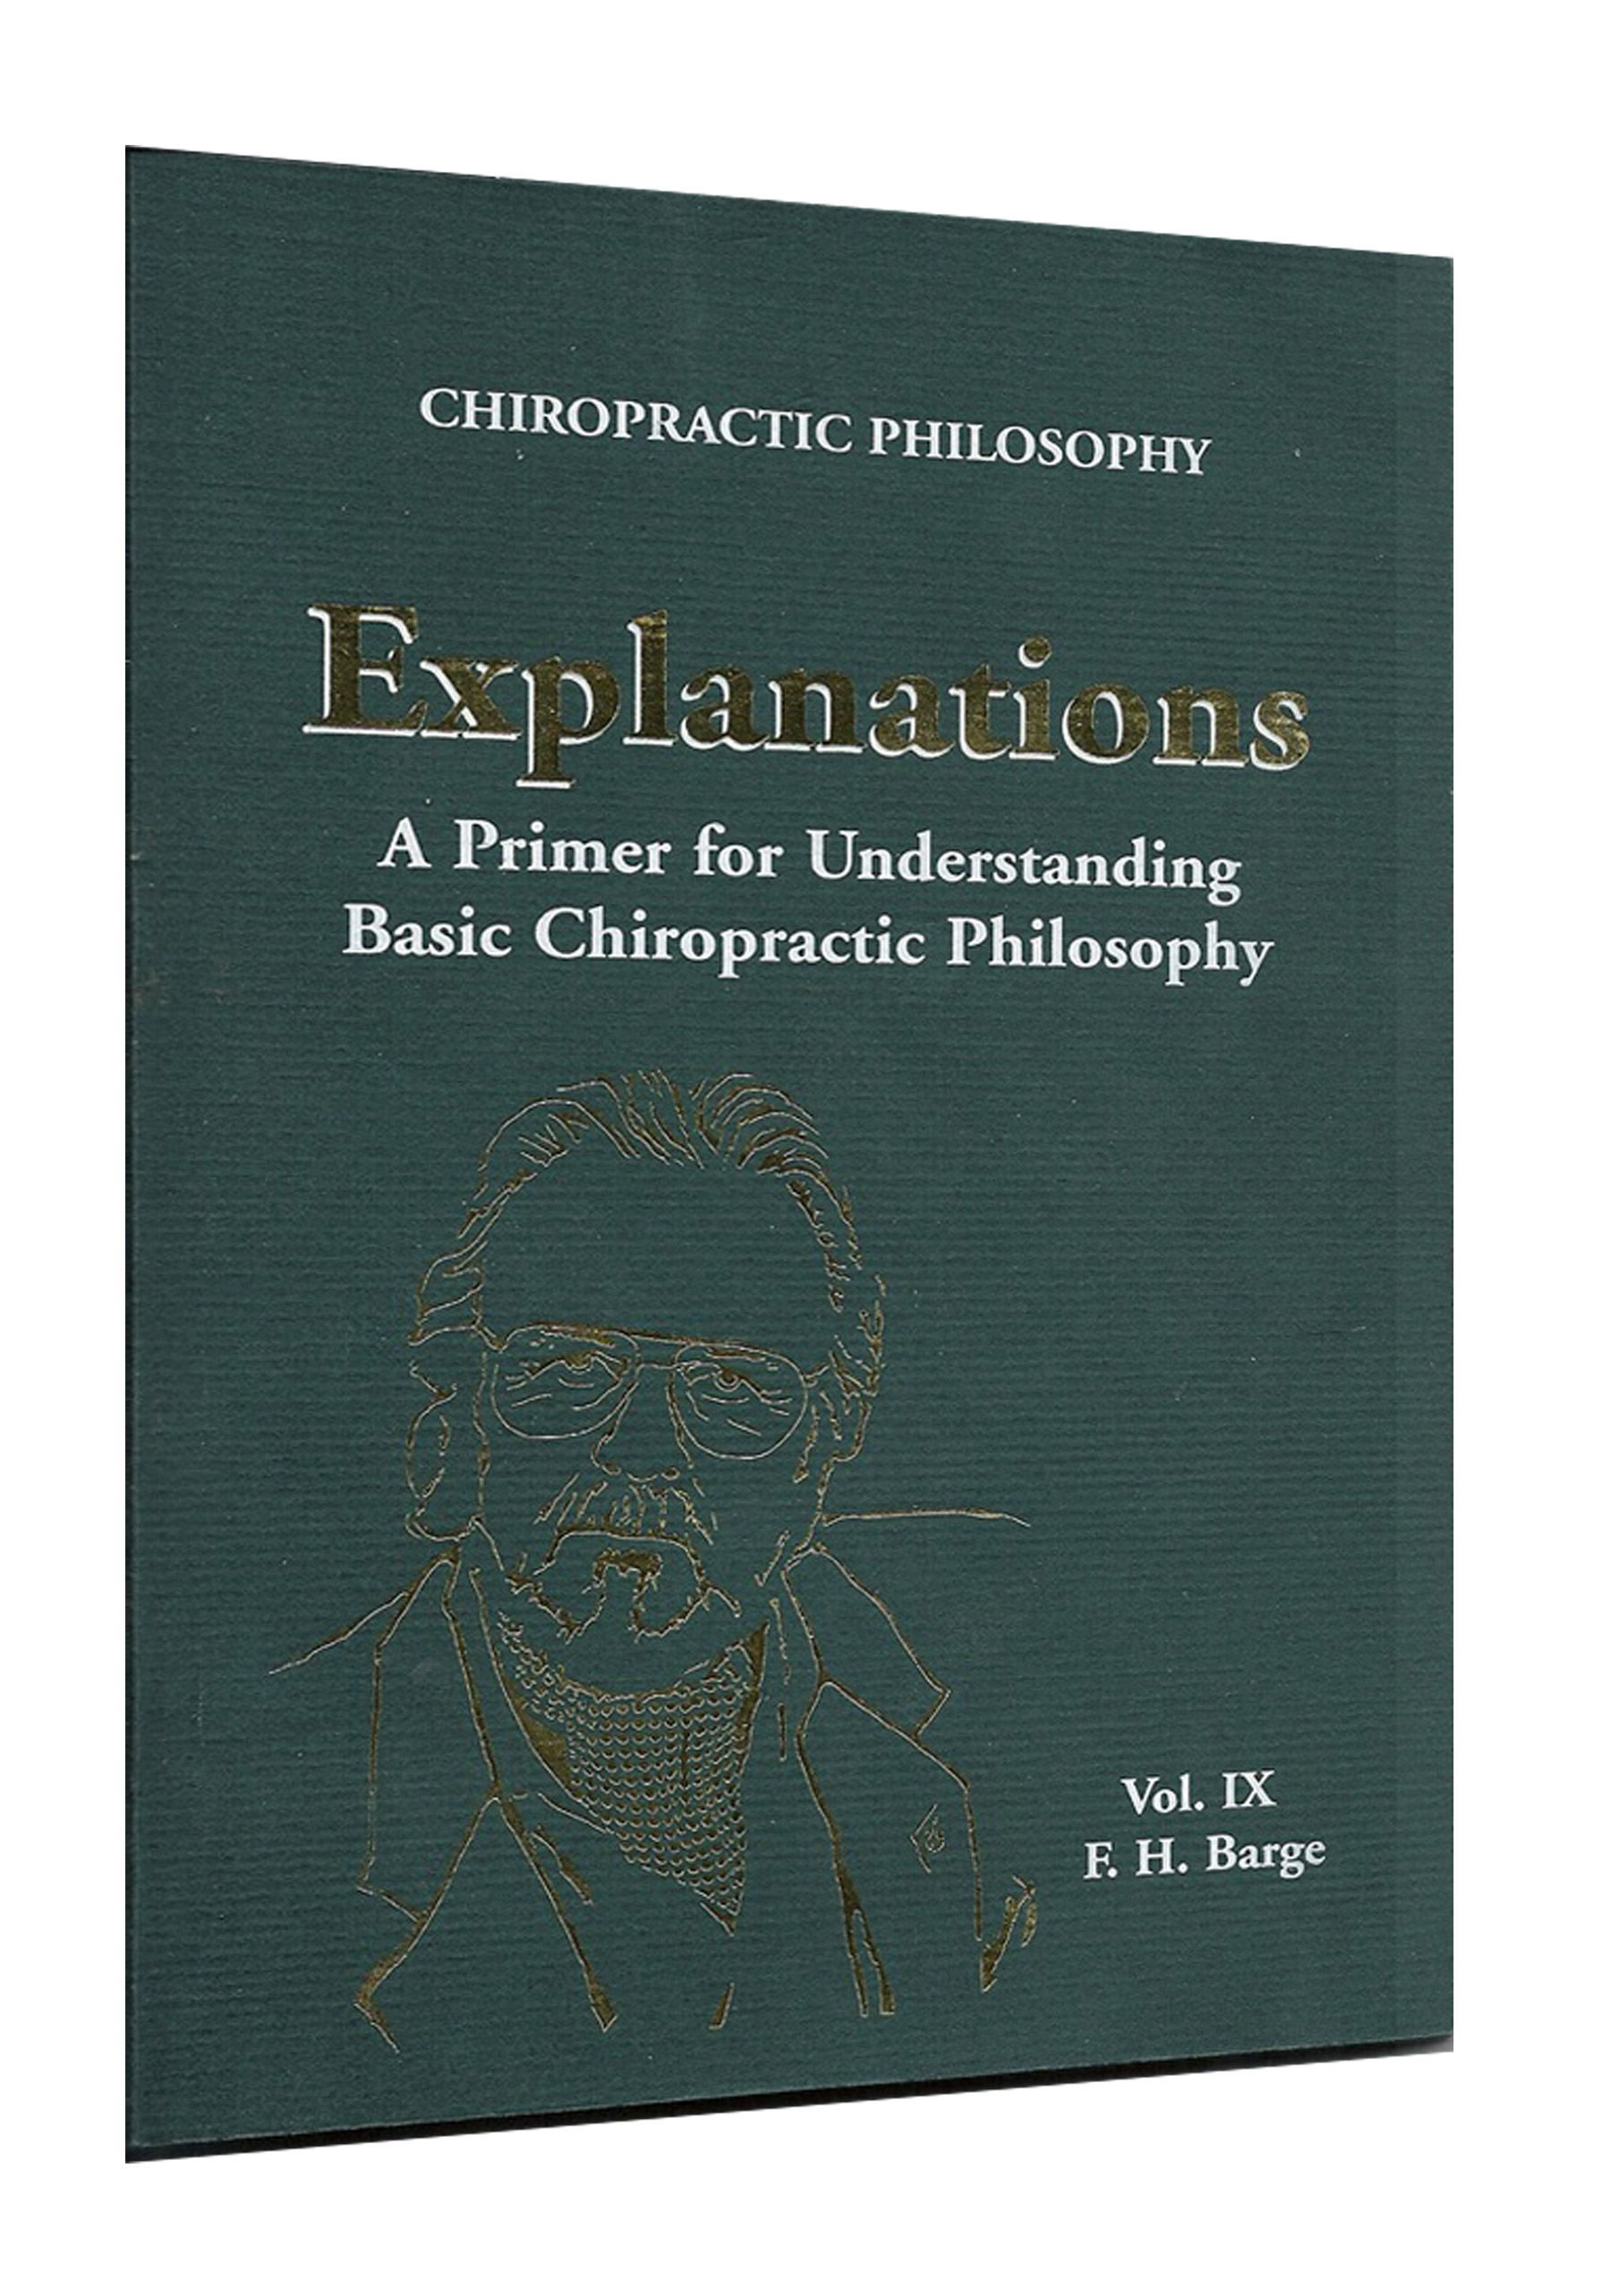 Explanations: A Primer for Understaning Basic Chiropractic Philosophy (2005)